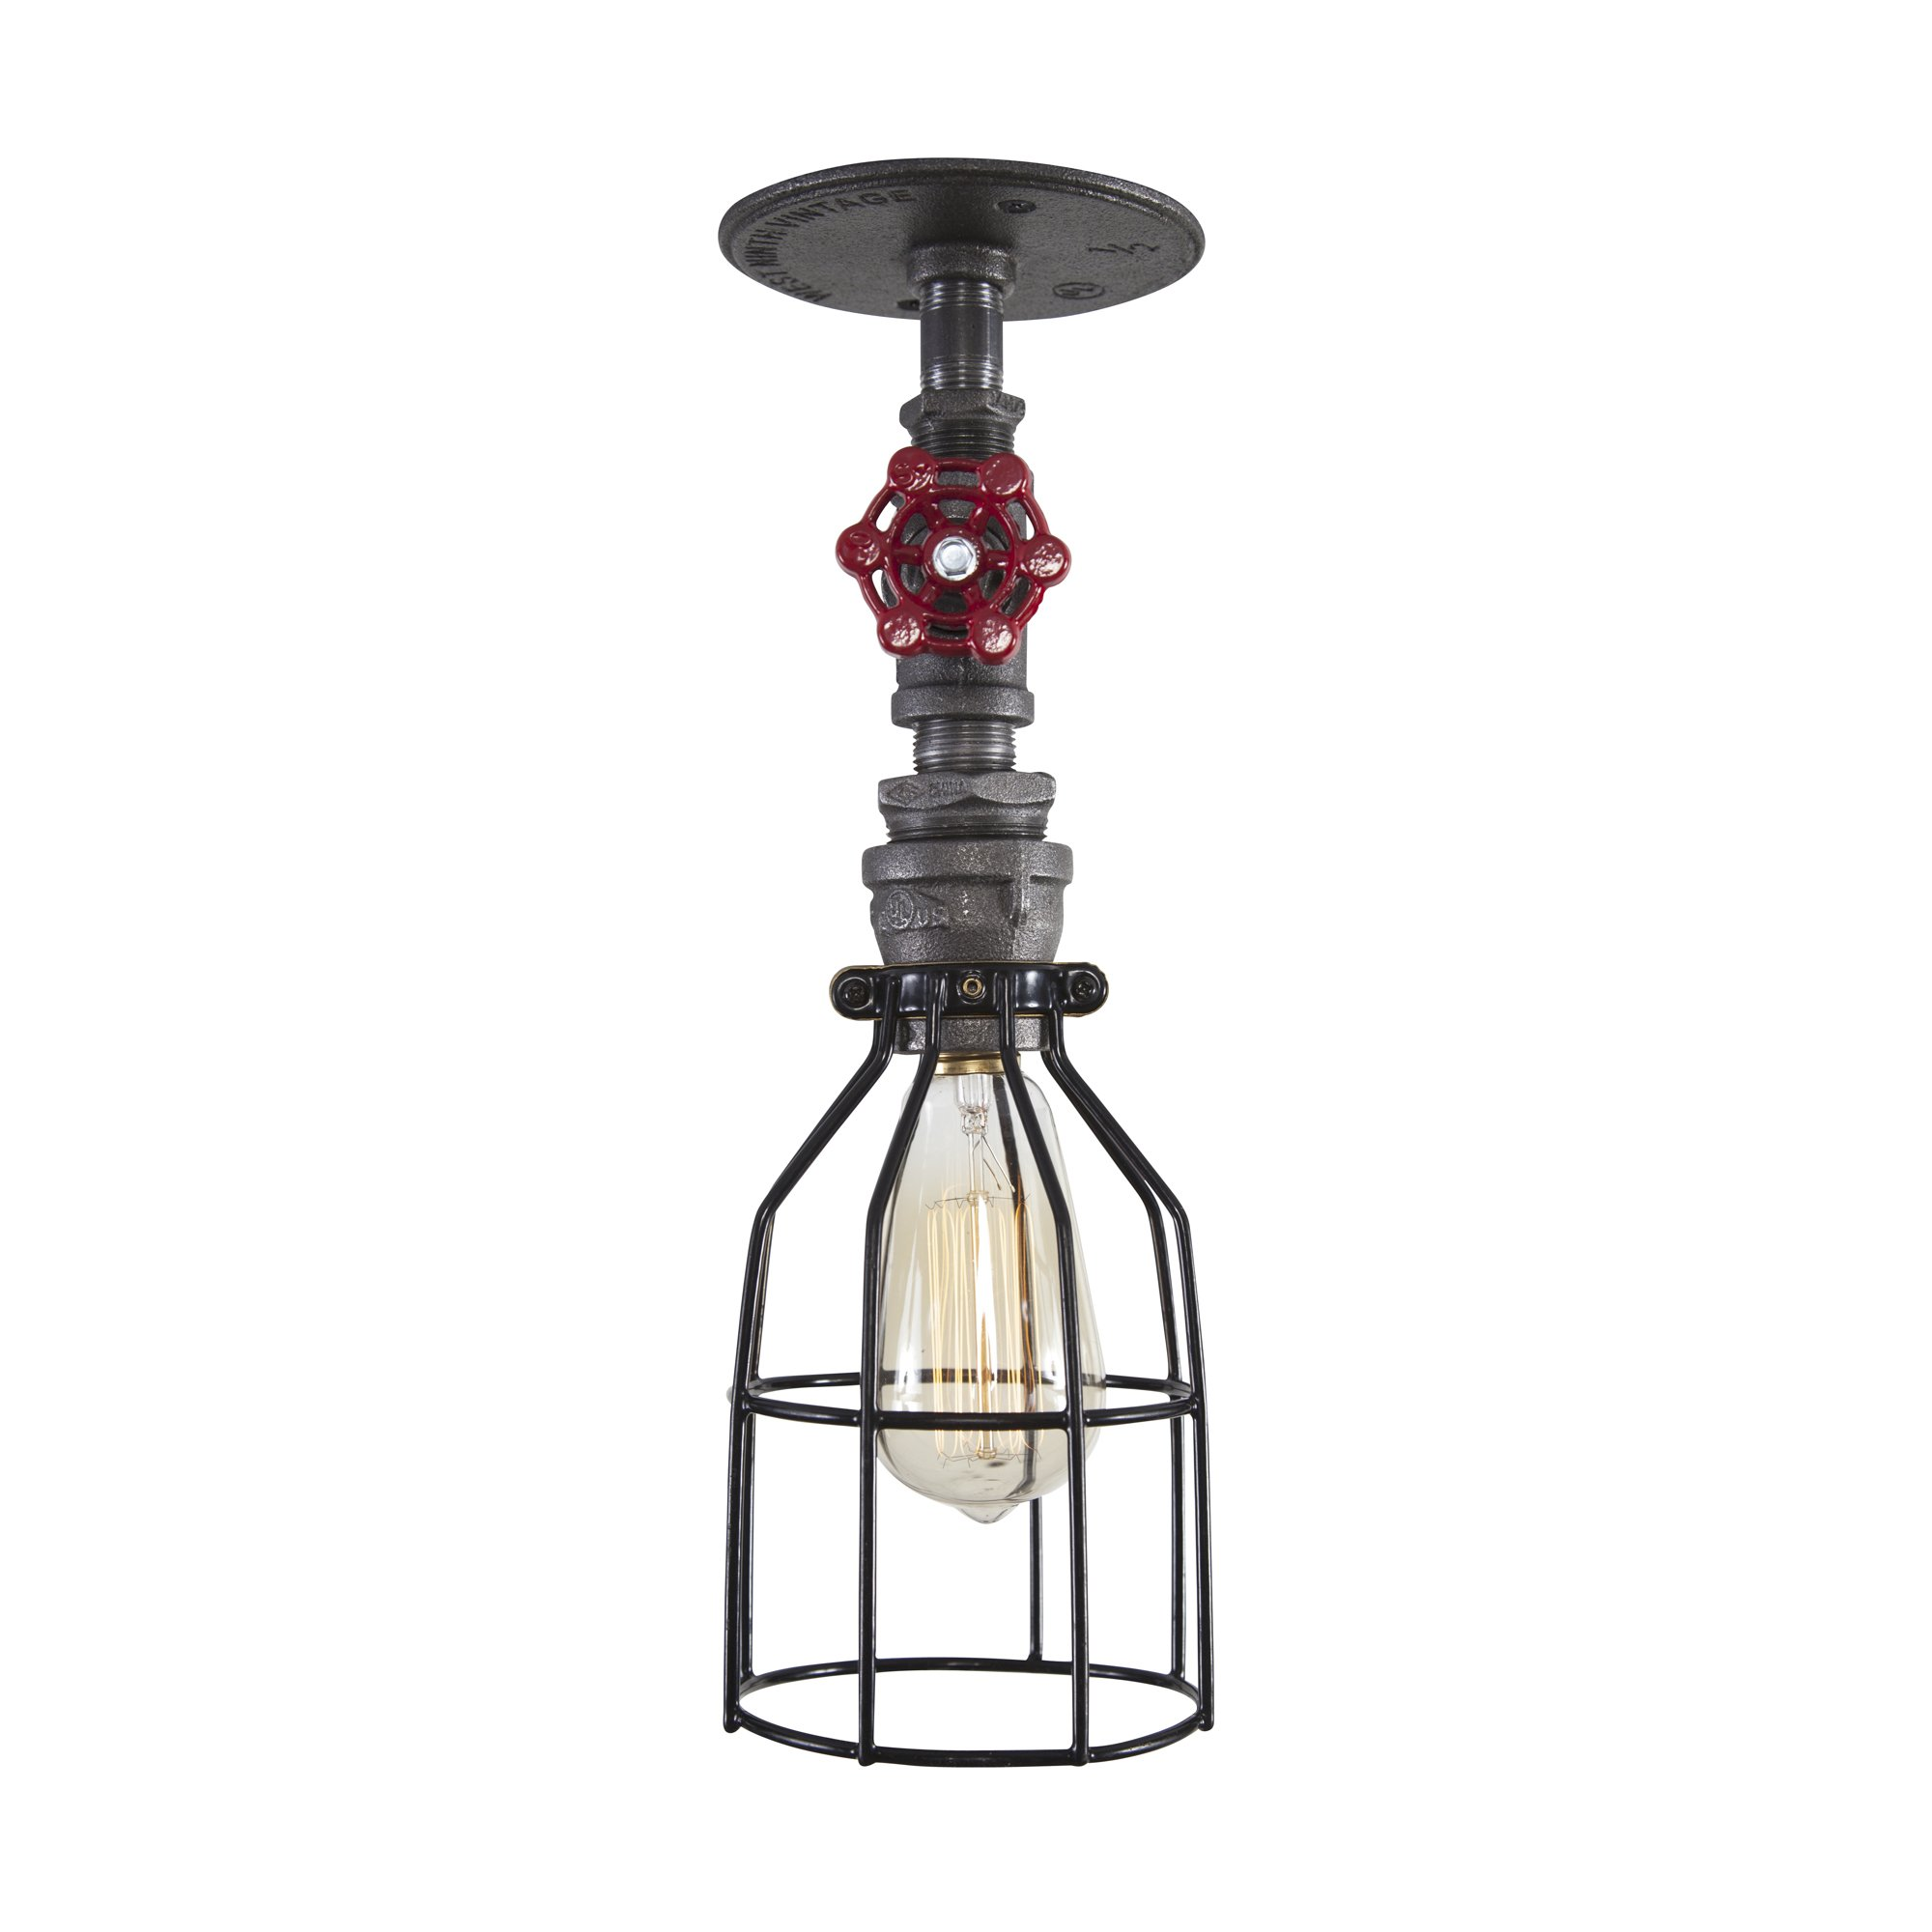 West Ninth Vintage Steel Single Ceiling Farmhouse Light w/Red handle and Cage